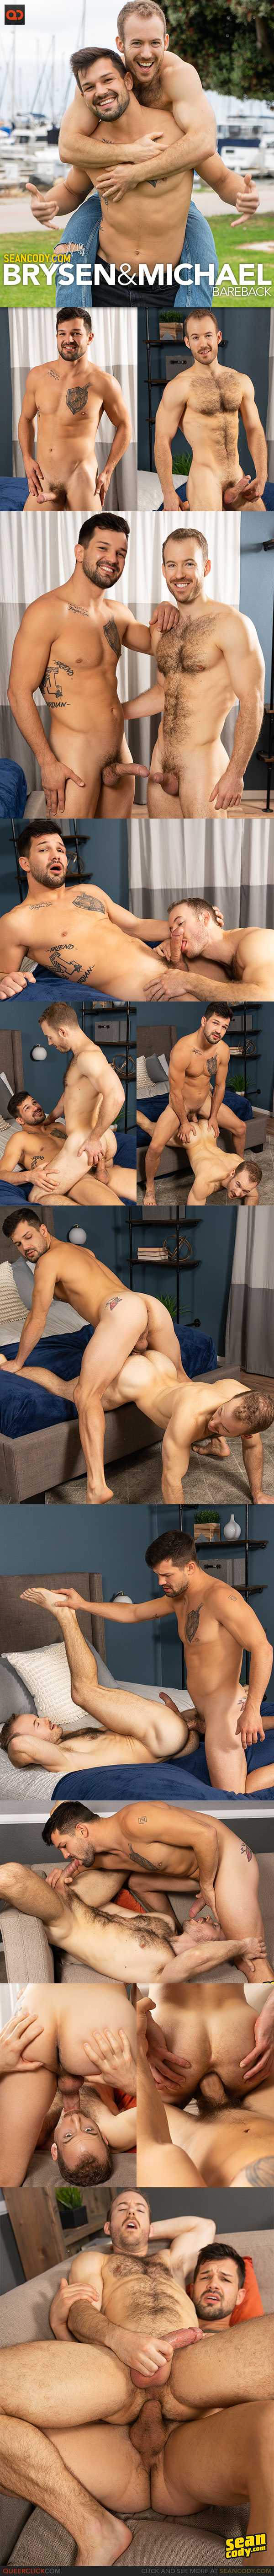 Sean Cody: Brysen And Michael